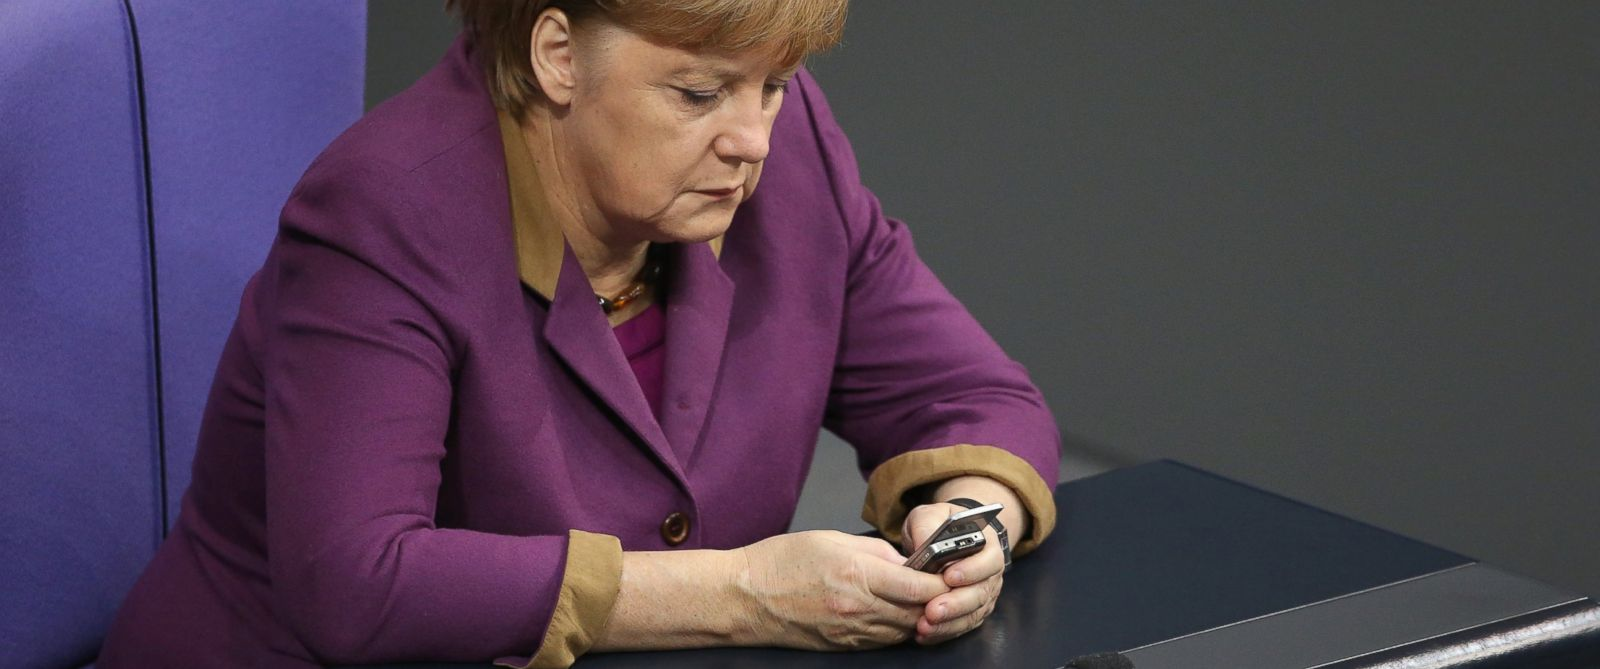 PHOTO: German Chancellor Angela Merkel checks her mobile phone during a session of the Bundestag on November 30, 2012 in Berlin, Germany.